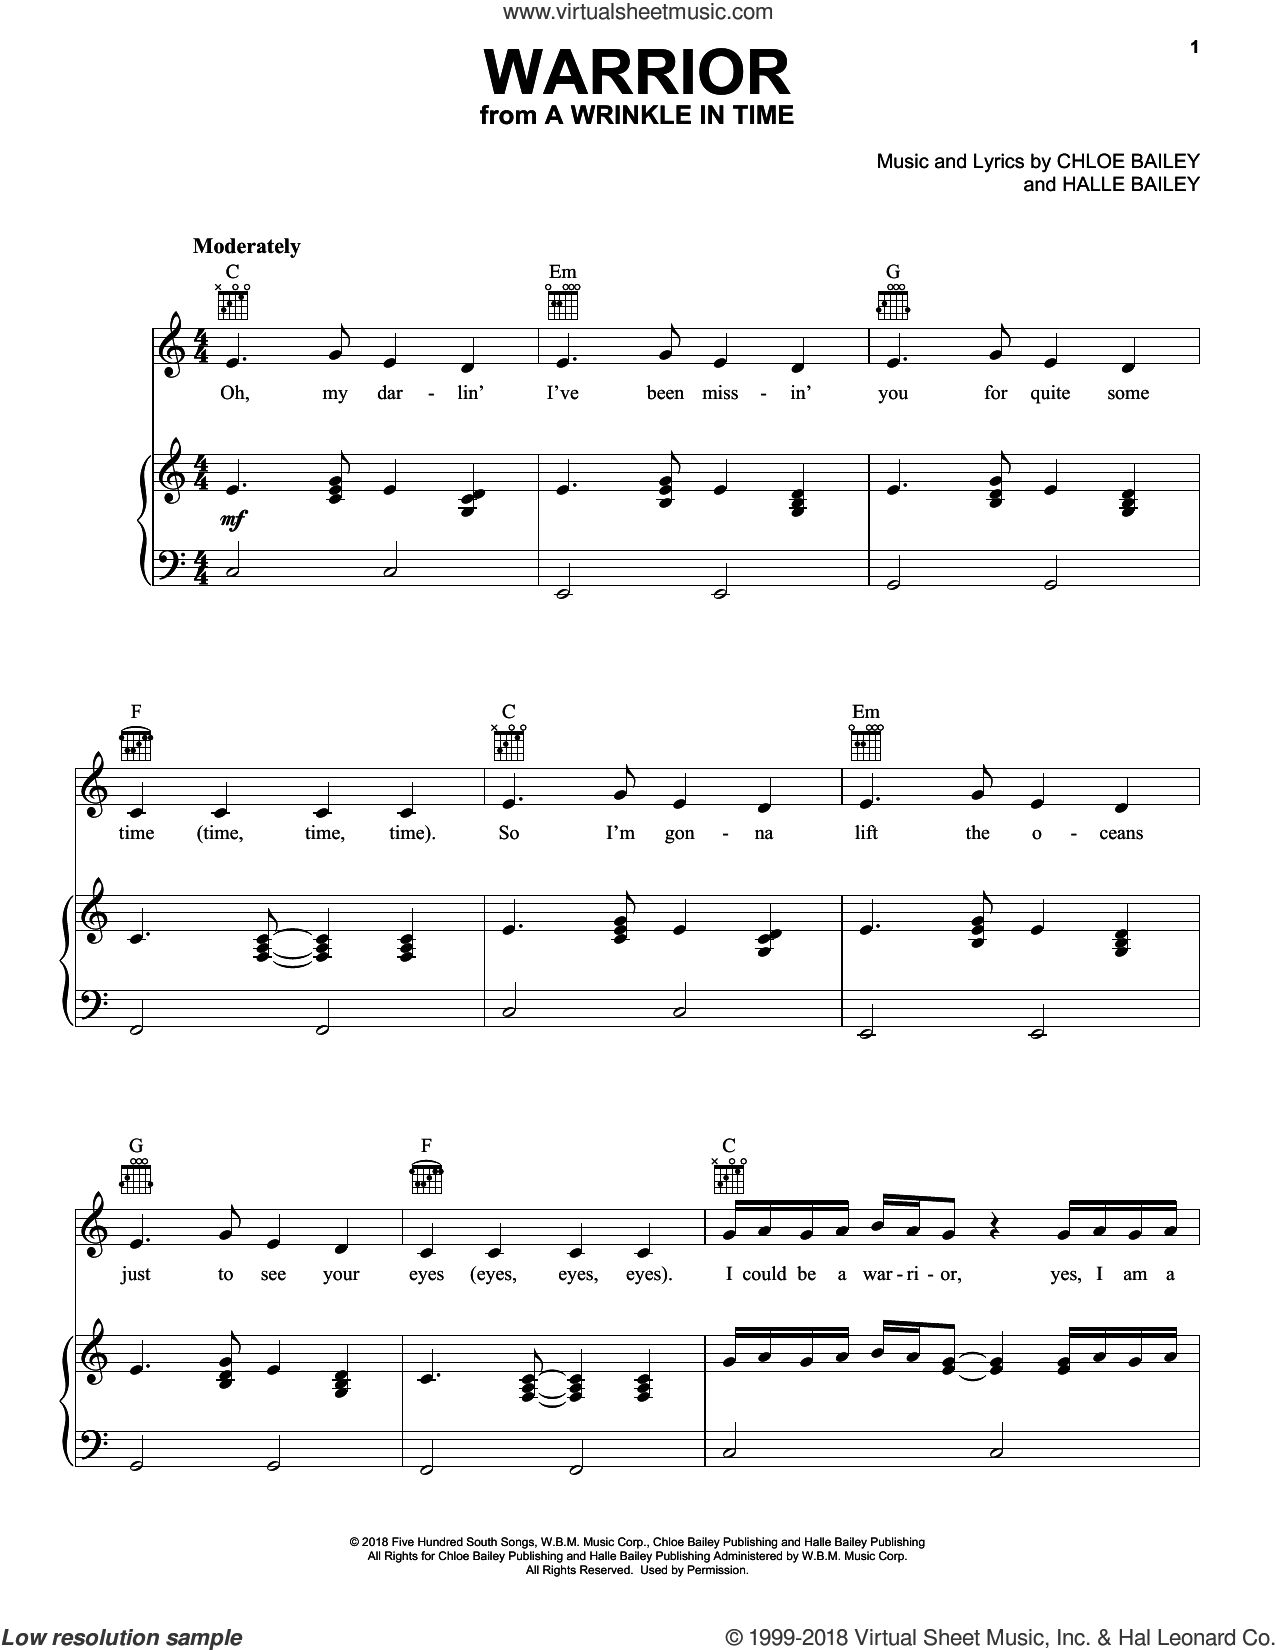 Warrior (from A Wrinkle In Time) sheet music for voice, piano or guitar by Halle Bailey and Chloe Bailey, intermediate skill level